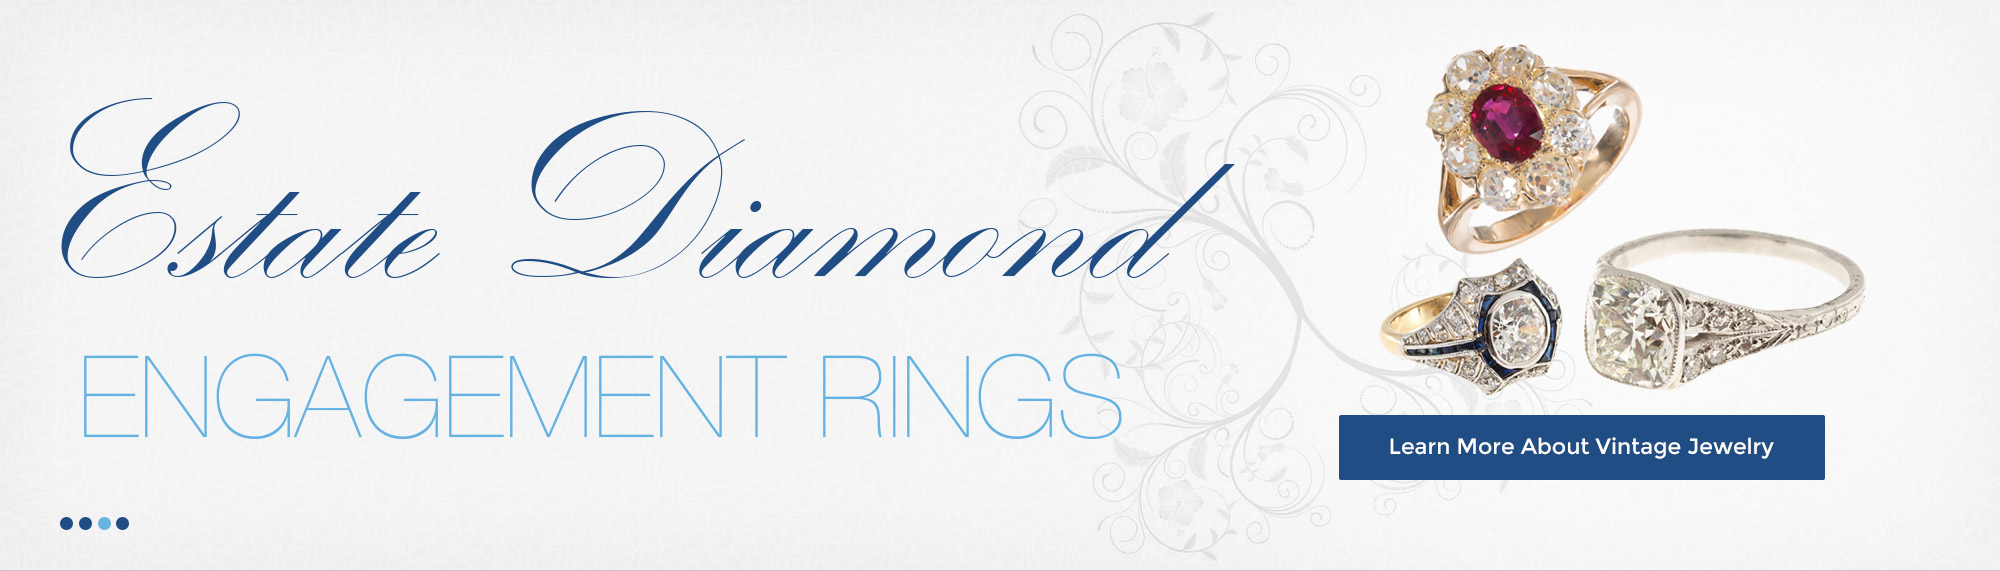 Estate Diamond Engagement Rings